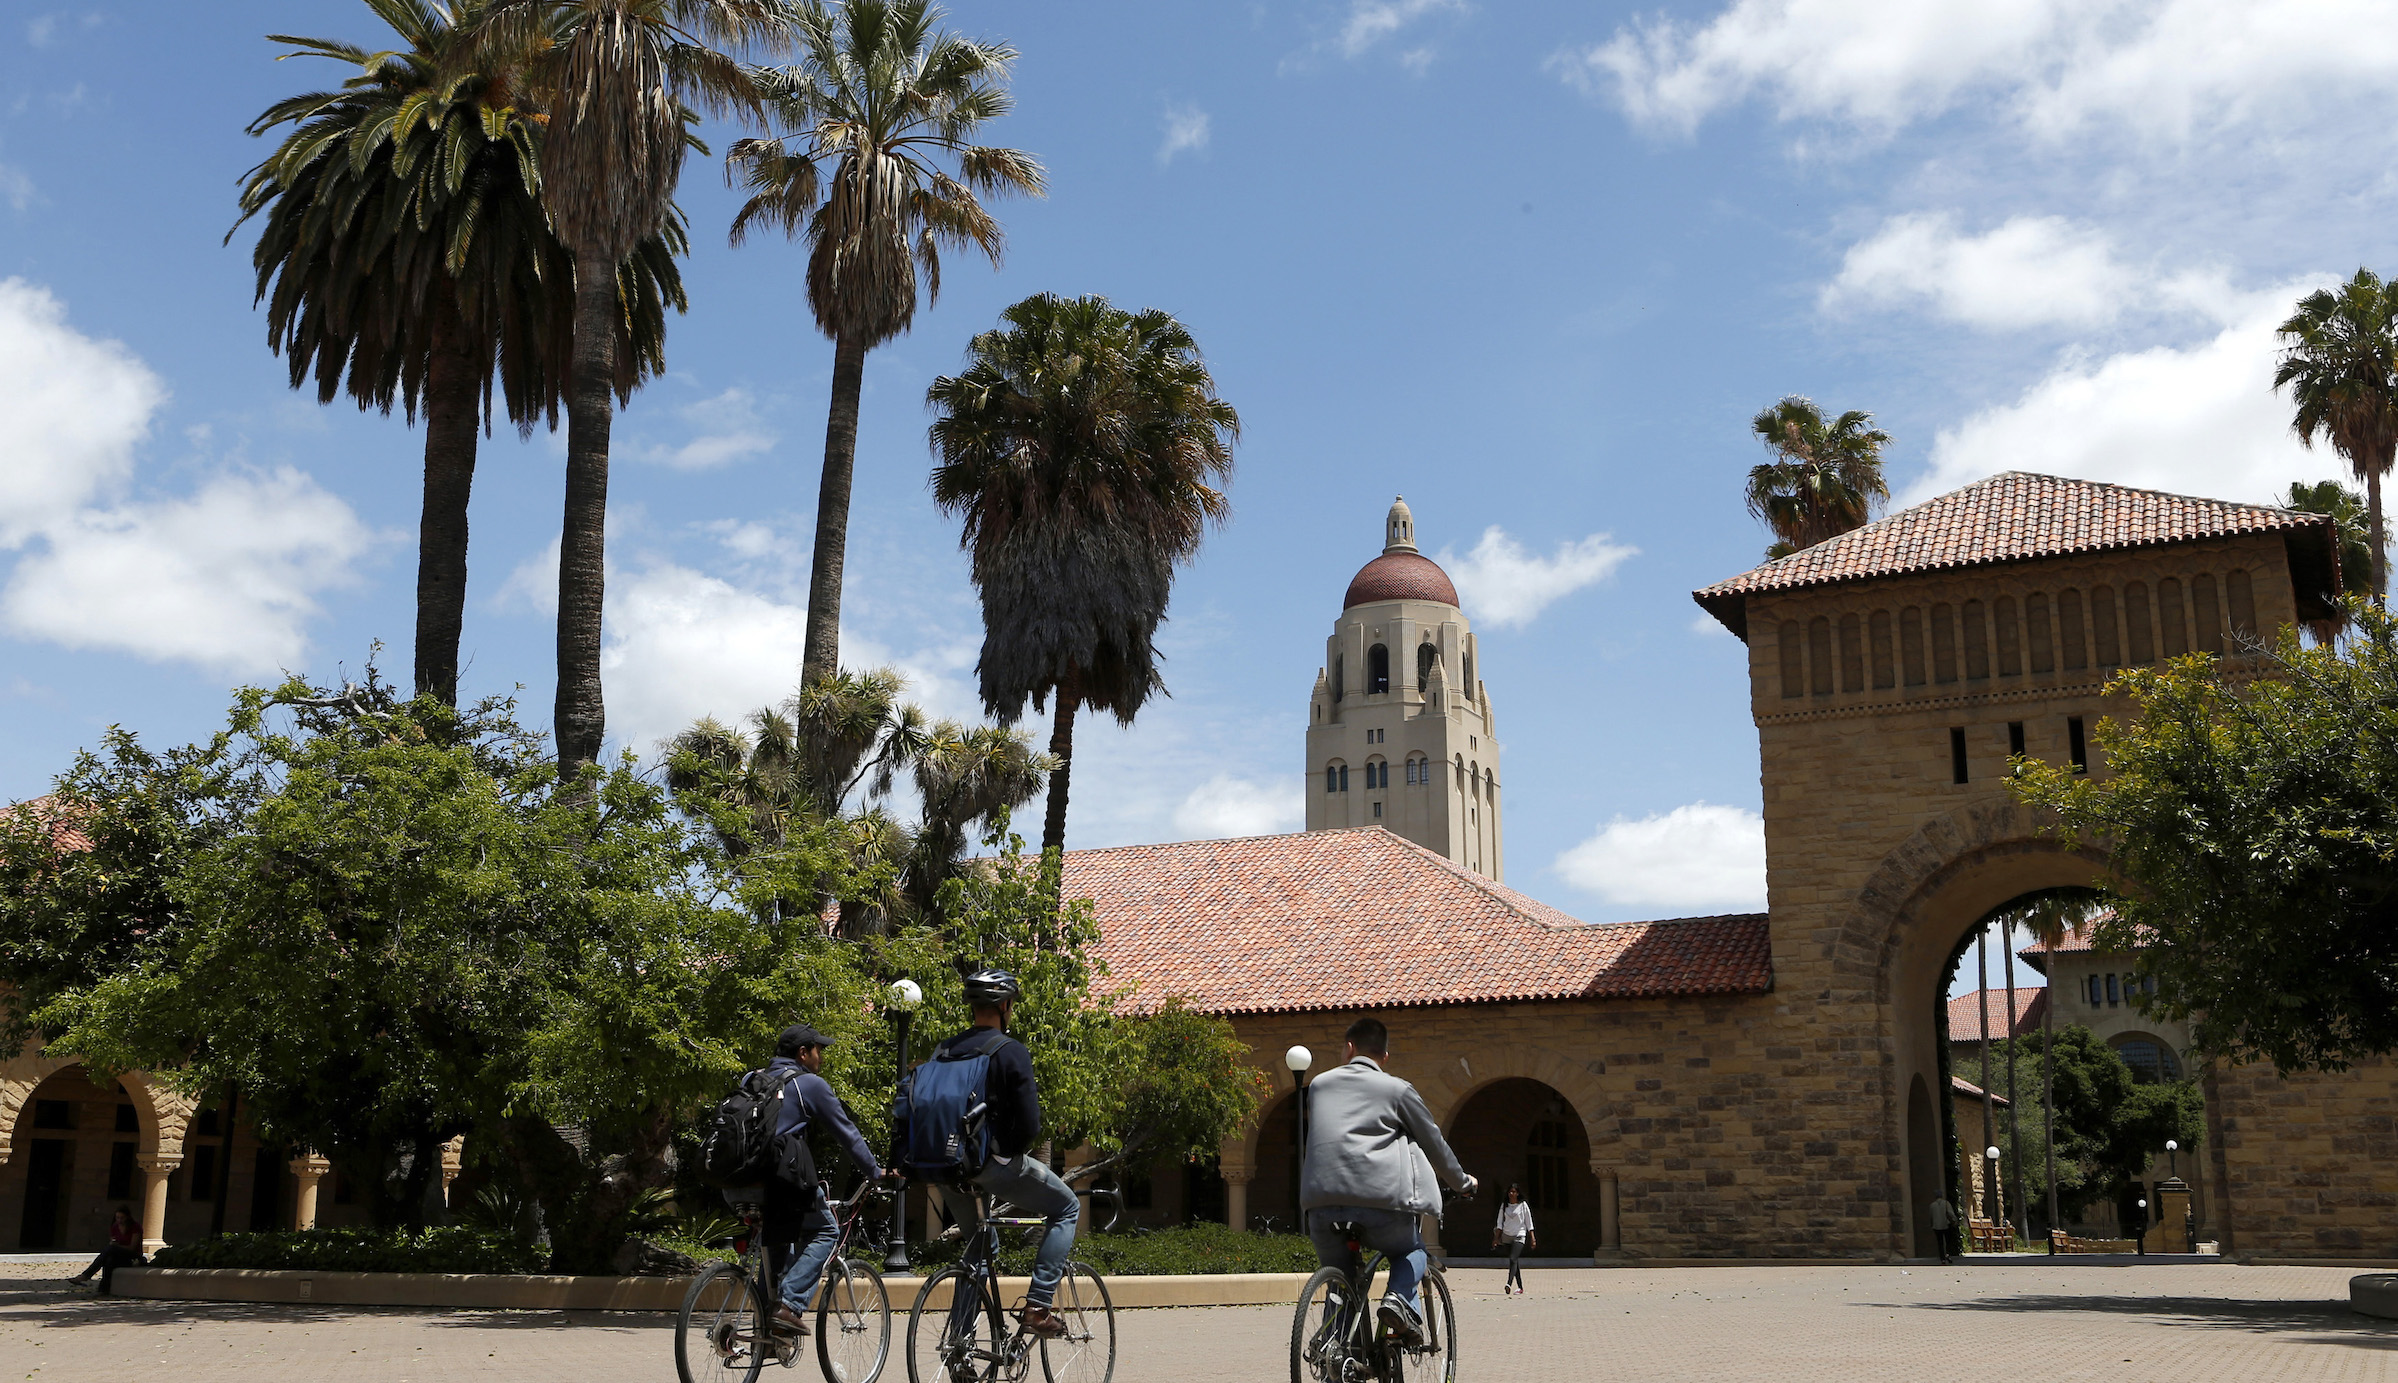 Cyclists traverse the main quad on Stanford University's campus in Stanford, California May 9, 2014. Picture taken May 9, 2014. To match Special Report USA-STARTUPS/STANFORD       REUTERS/Beck Diefenbach (UNITED STATES  - Tags: EDUCATION BUSINESS SCIENCE TECHNOLOGY) - RTR4HHTH